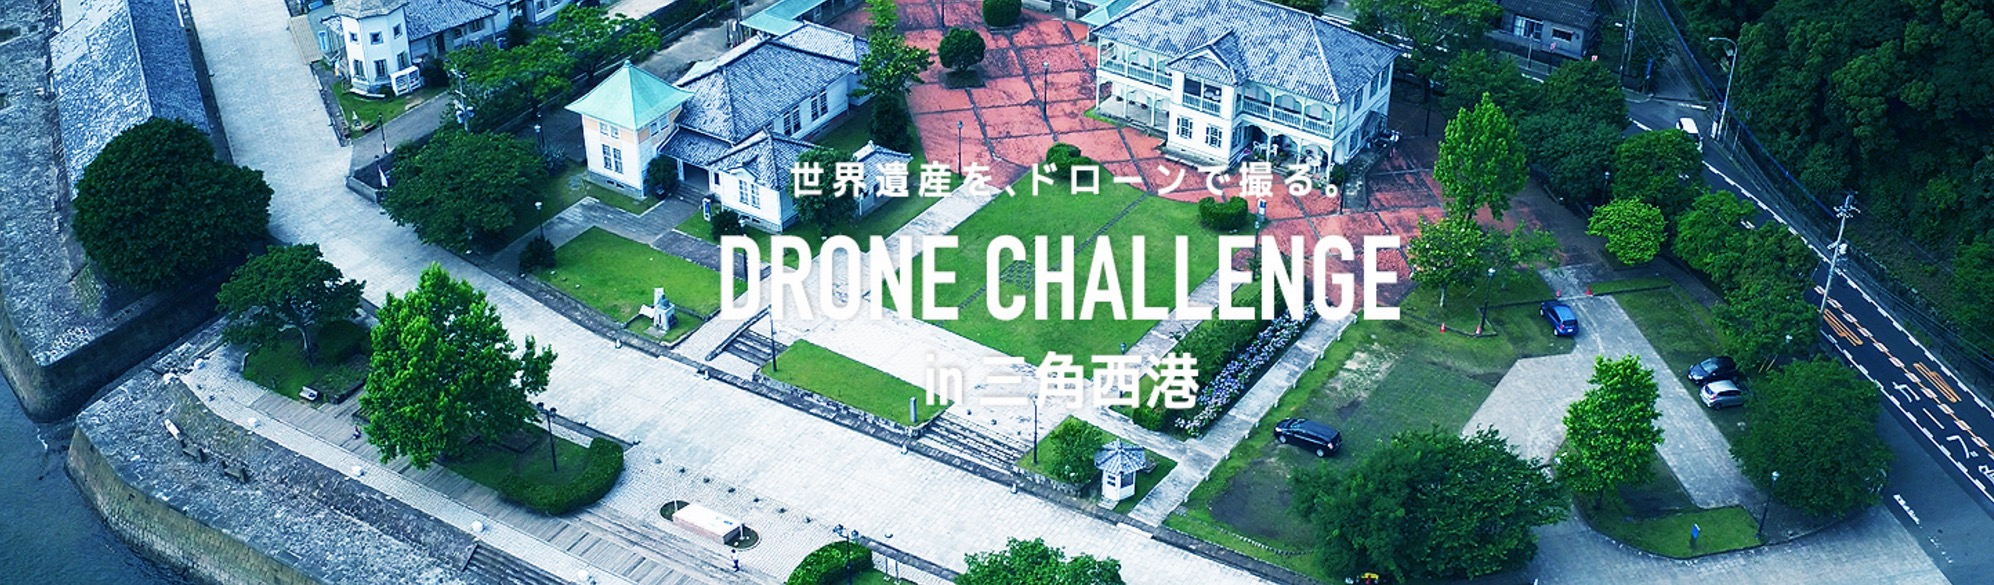 DRONE CHALLENGE 03